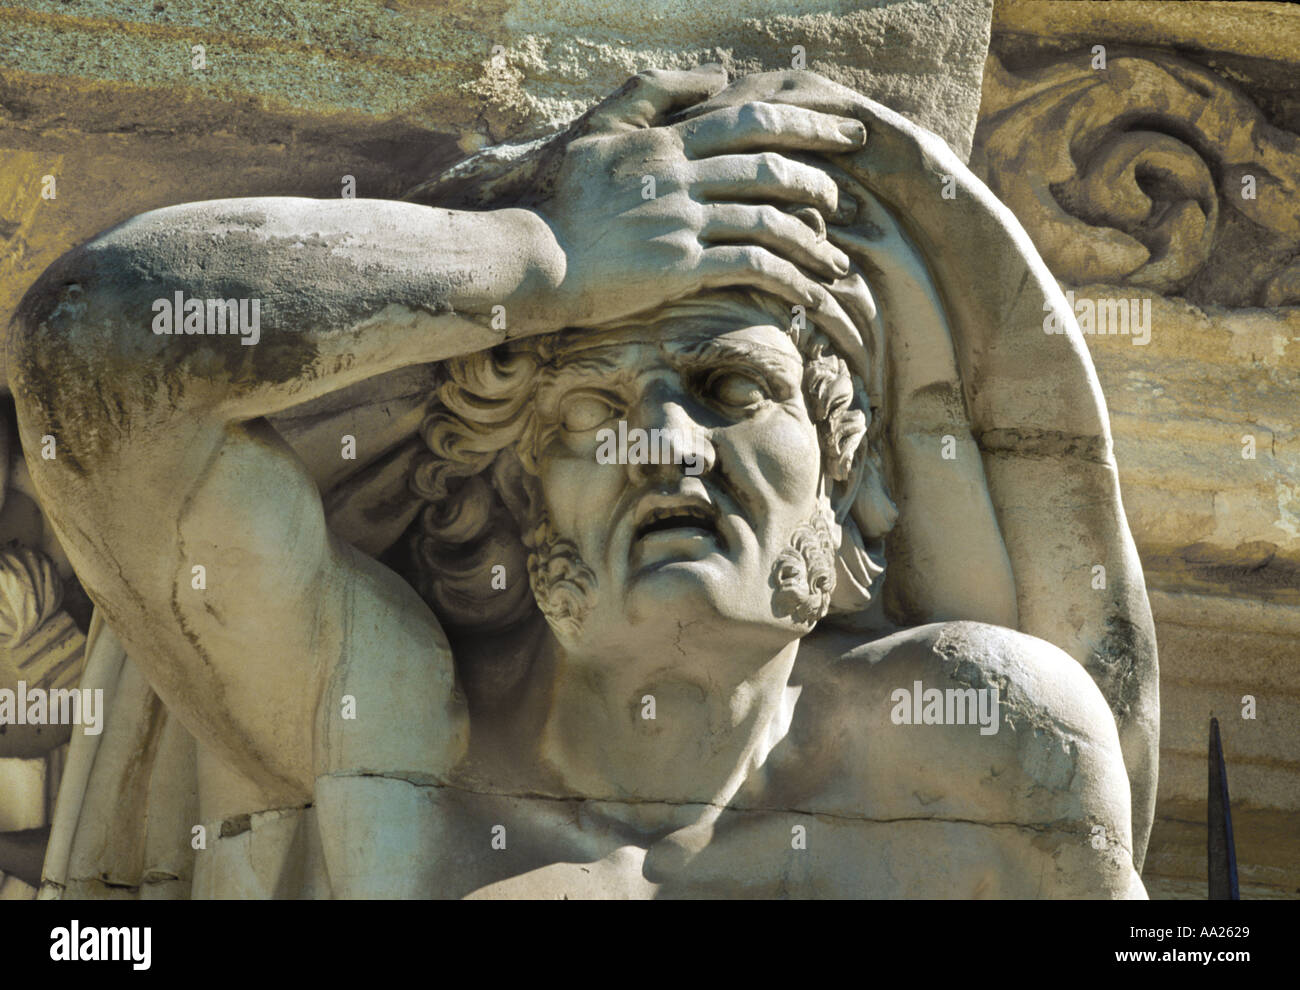 Atlante of the Pavillon Vendome in Aix en Provence France Stock Photo